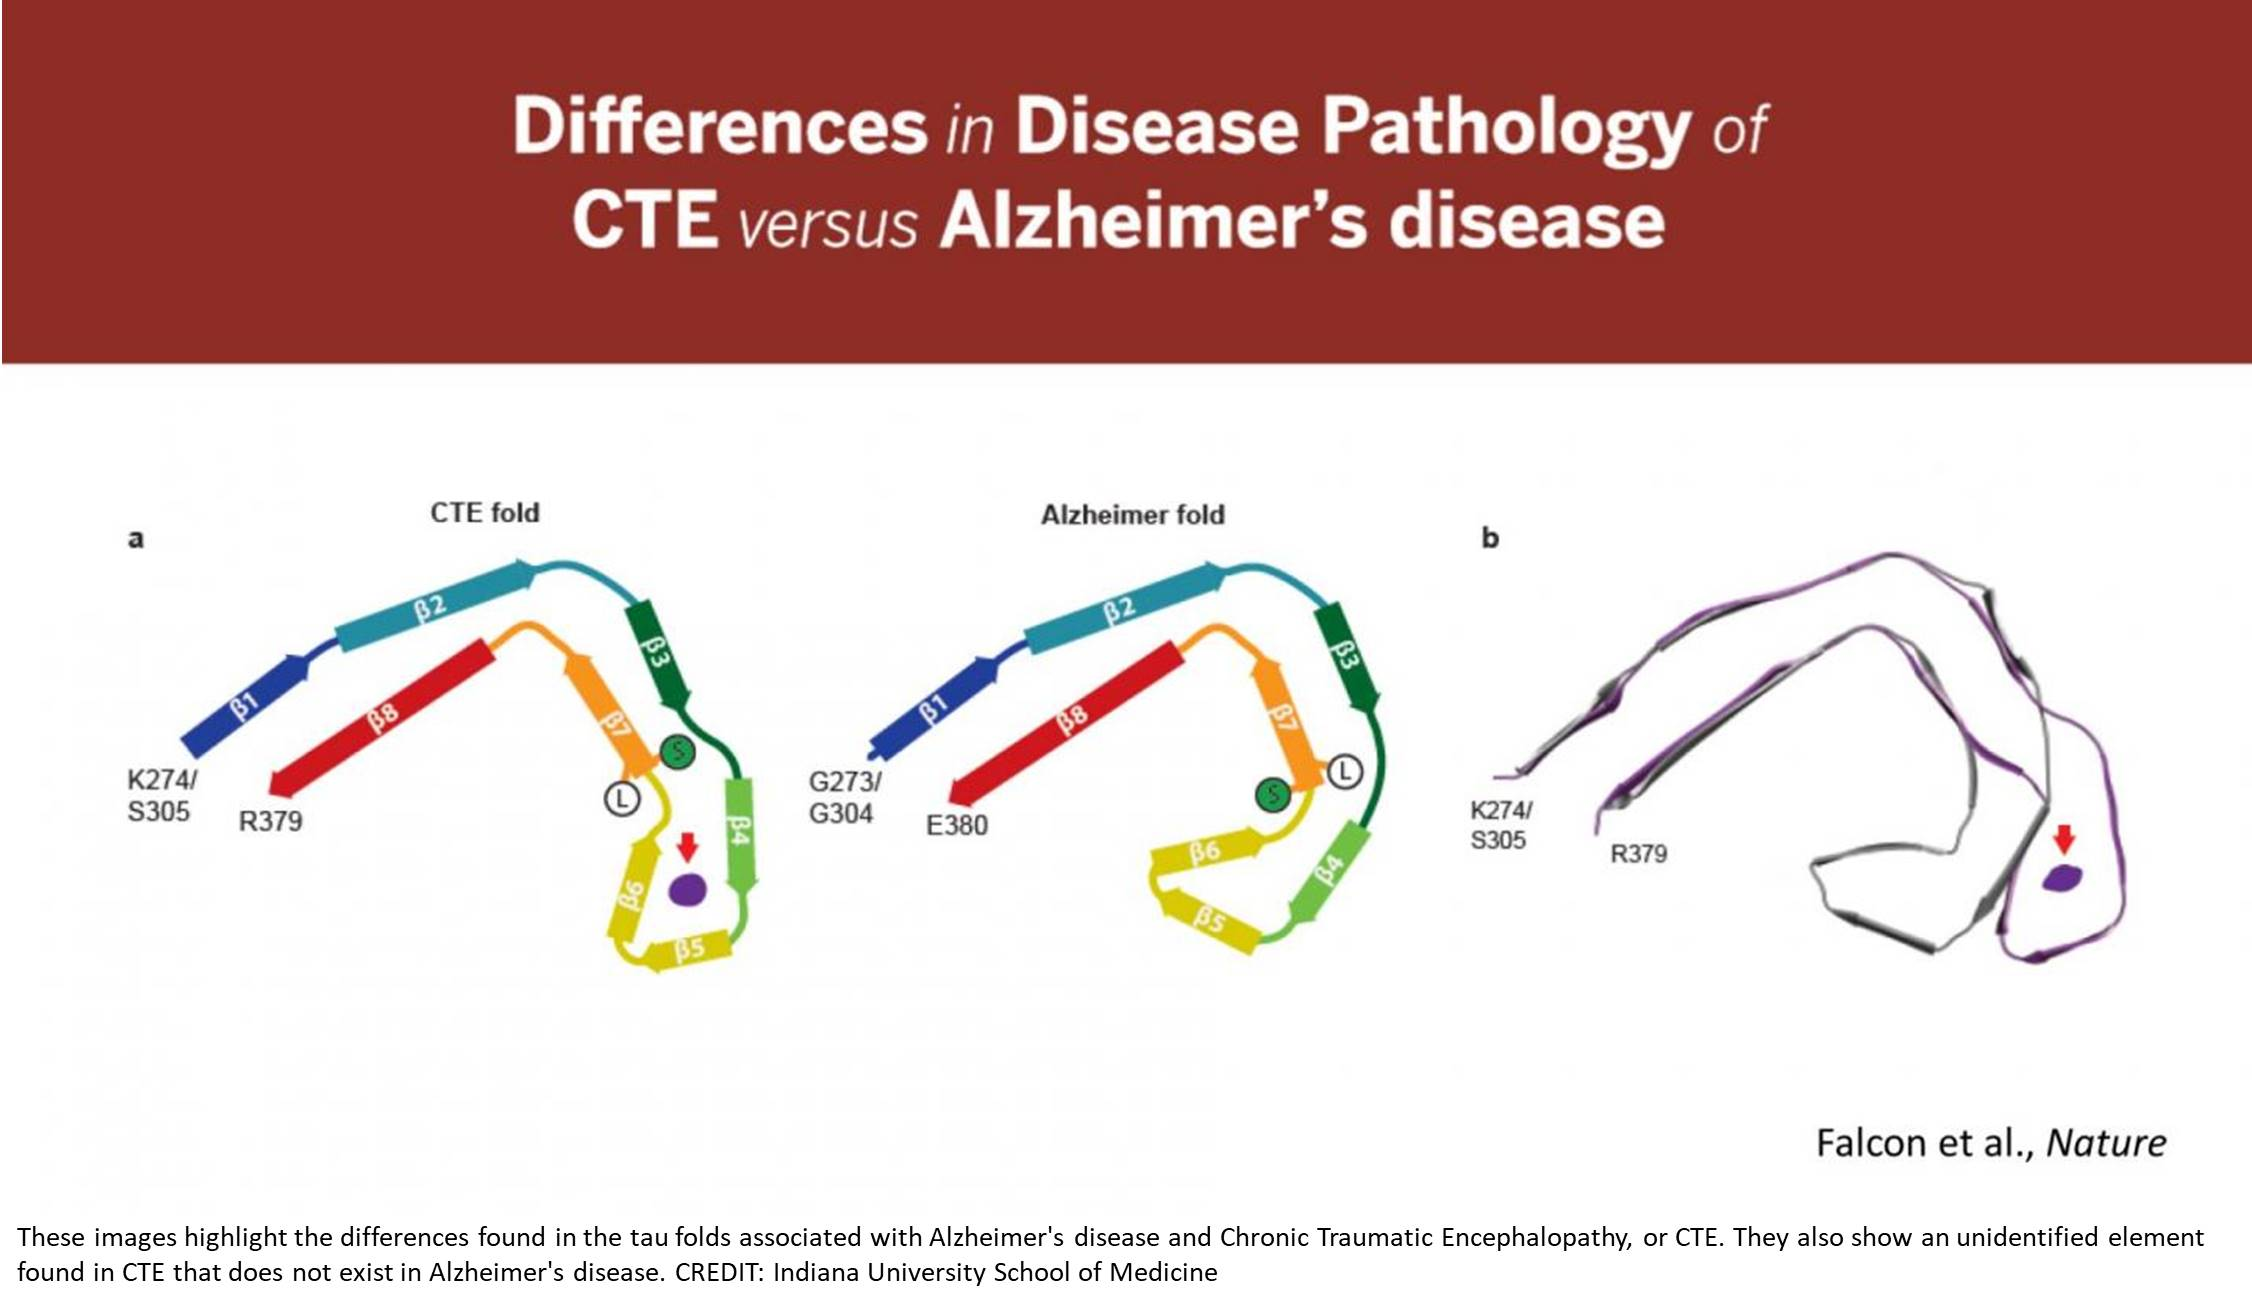 CTE differs from Alzheimer's disease in protein folding